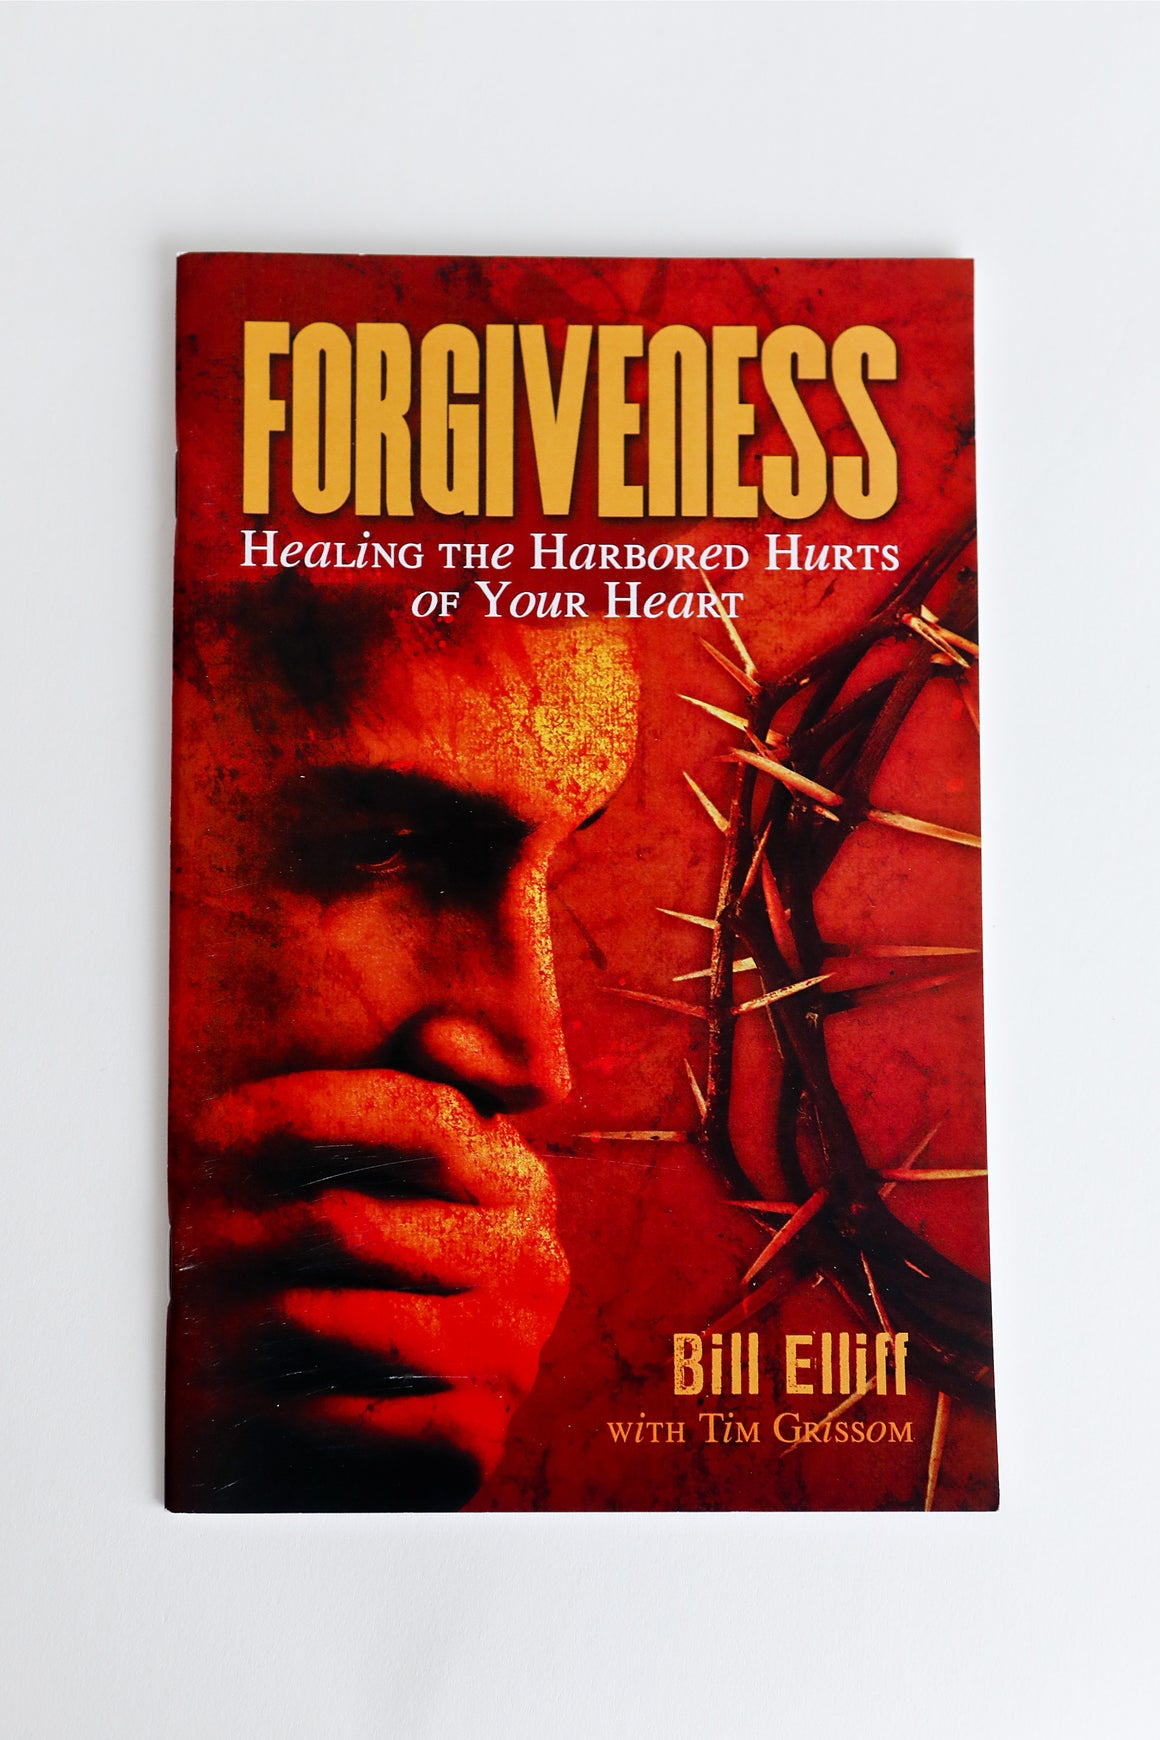 Forgiveness: Healing the Harbored Hurts of Your Heart-Bill Elliff